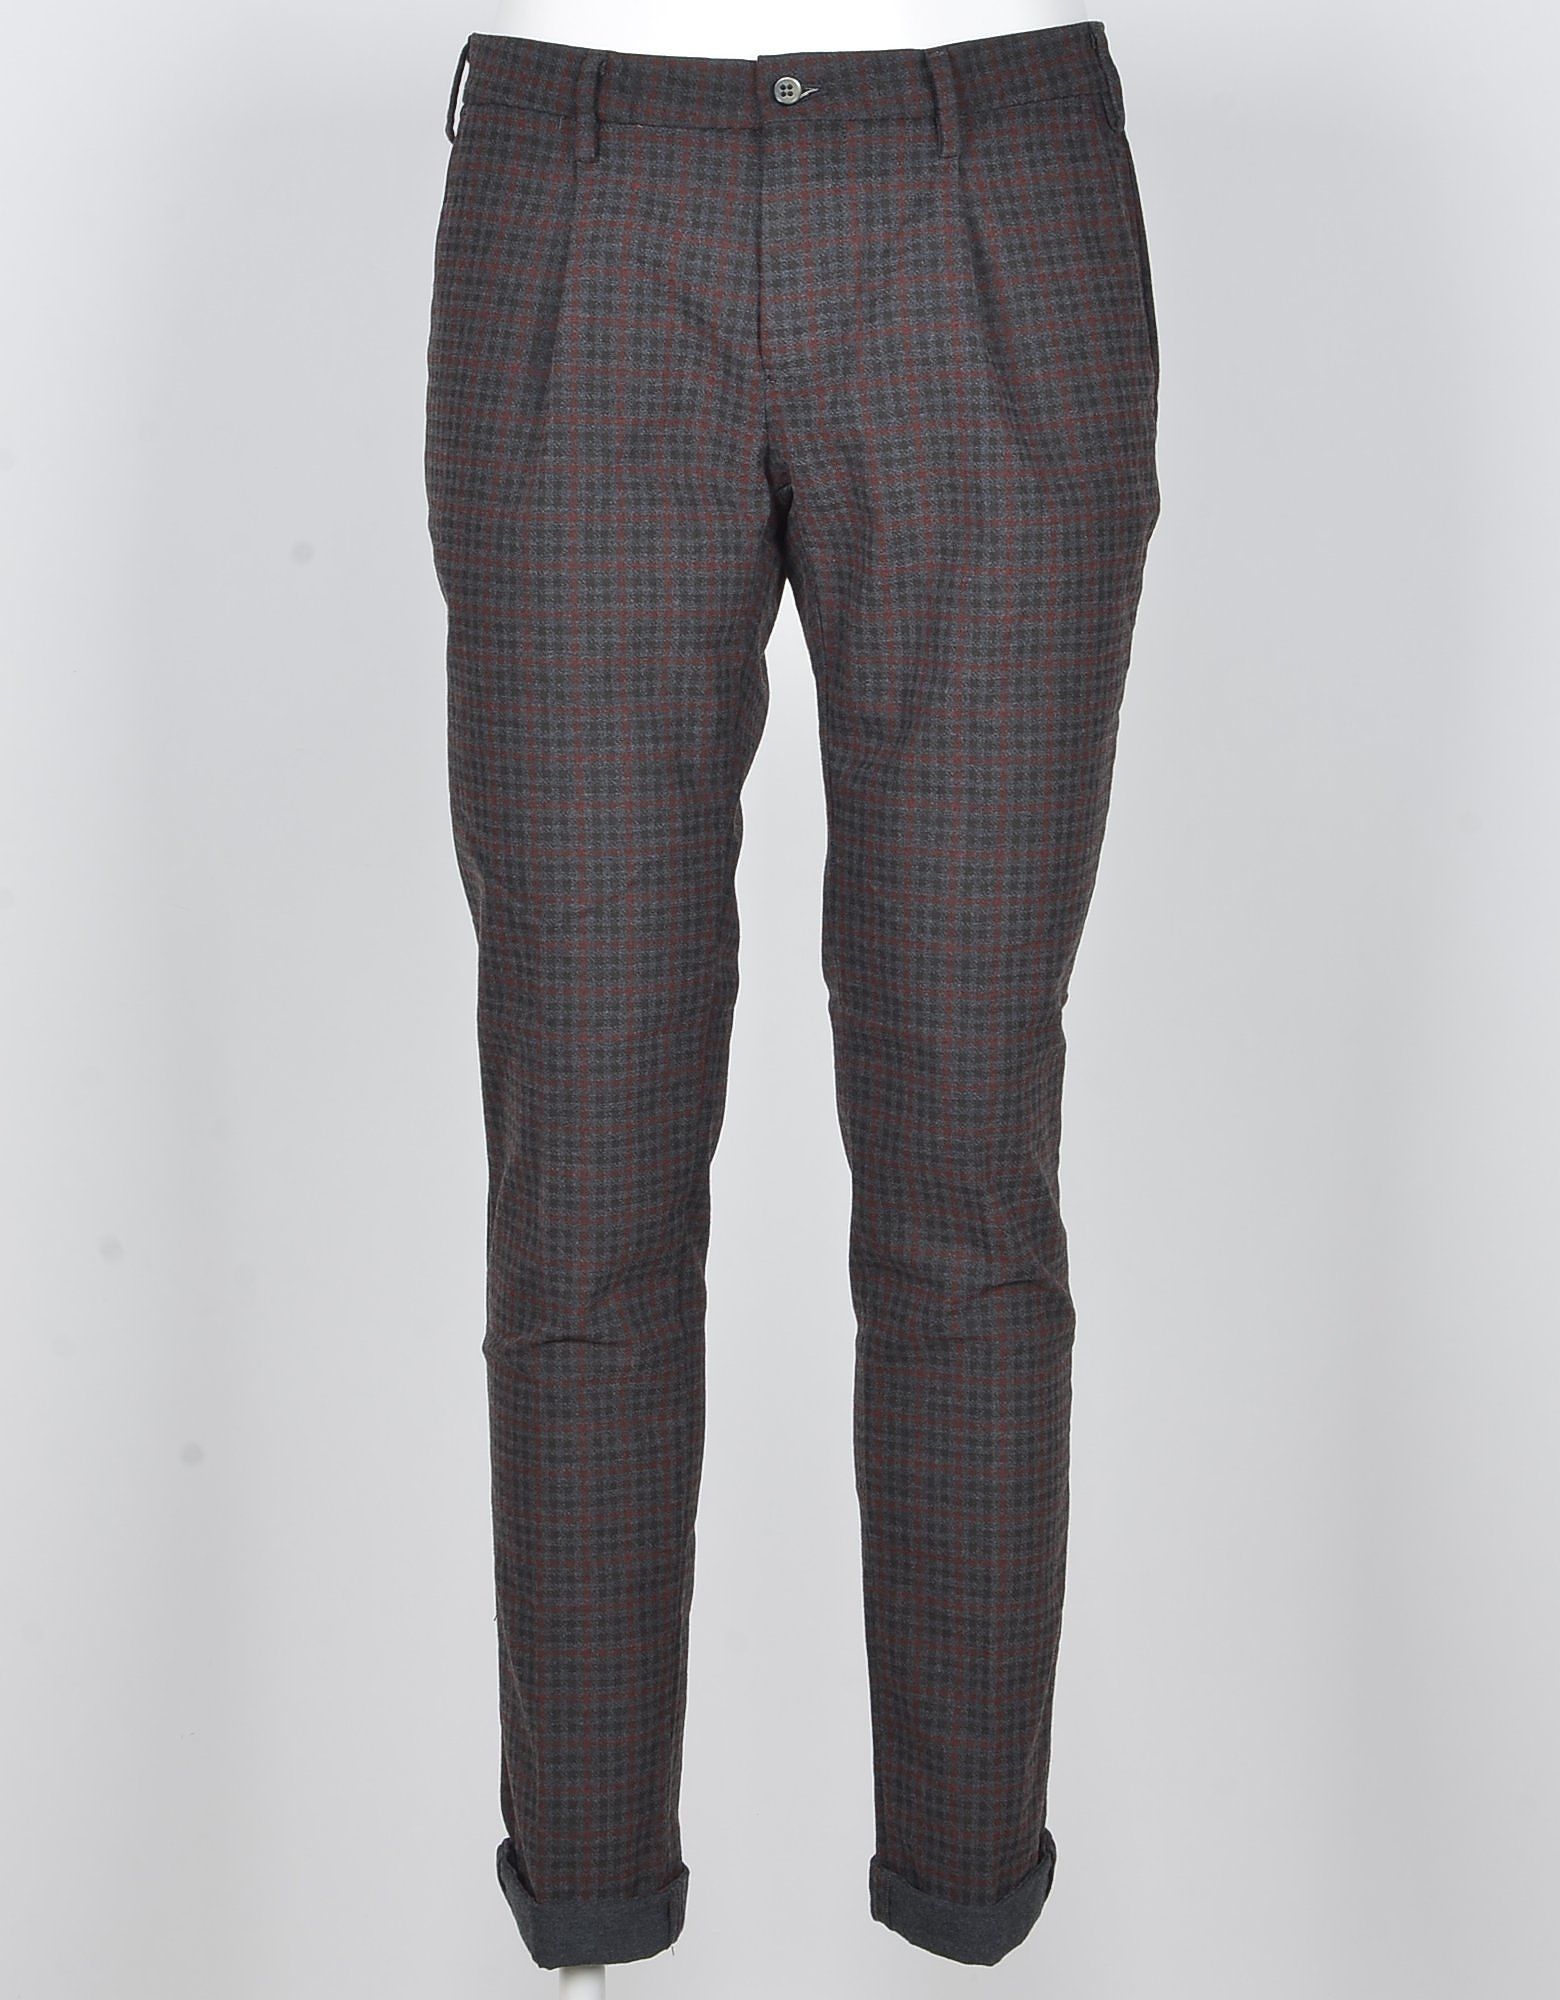 Mason's Designer Pants, Men's Gray / Bordeaux Pants